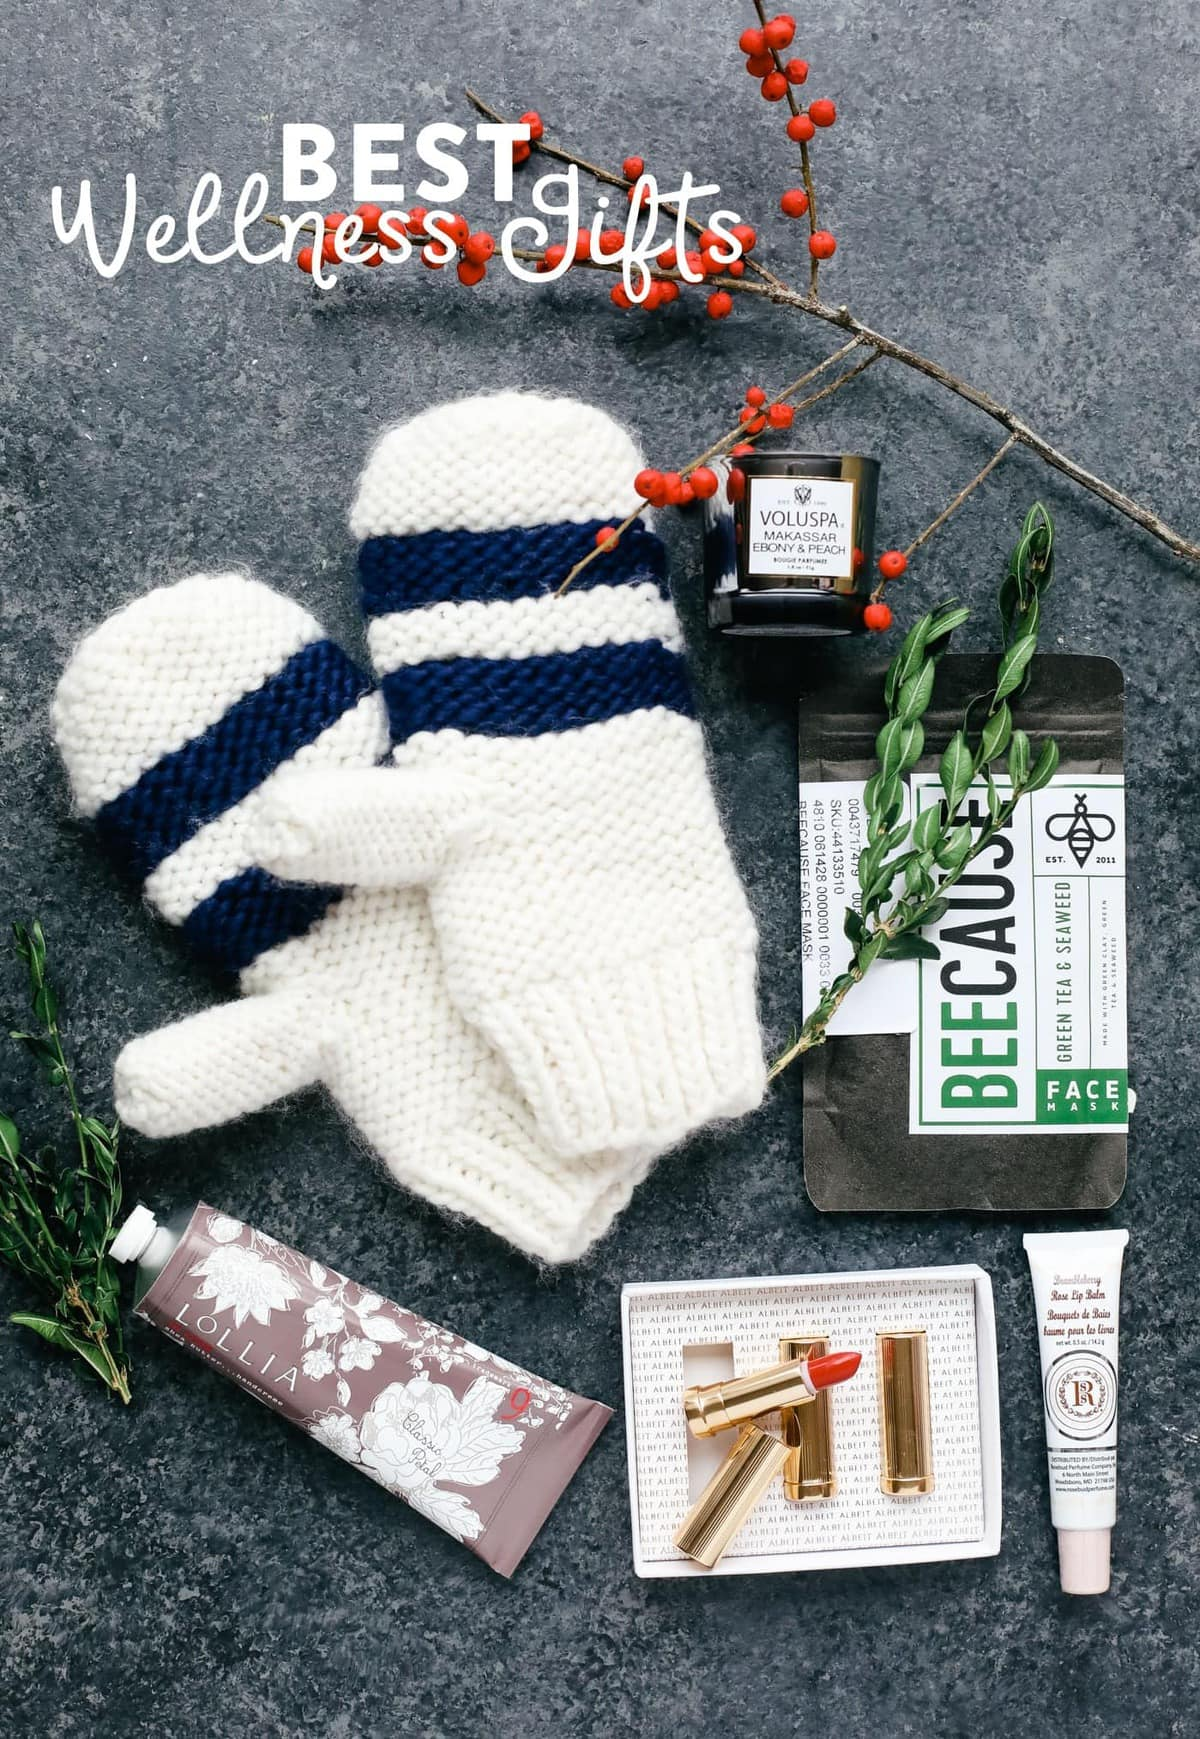 Give the gift of wellness and get your girls wellness gifts perfect for a little self-care!